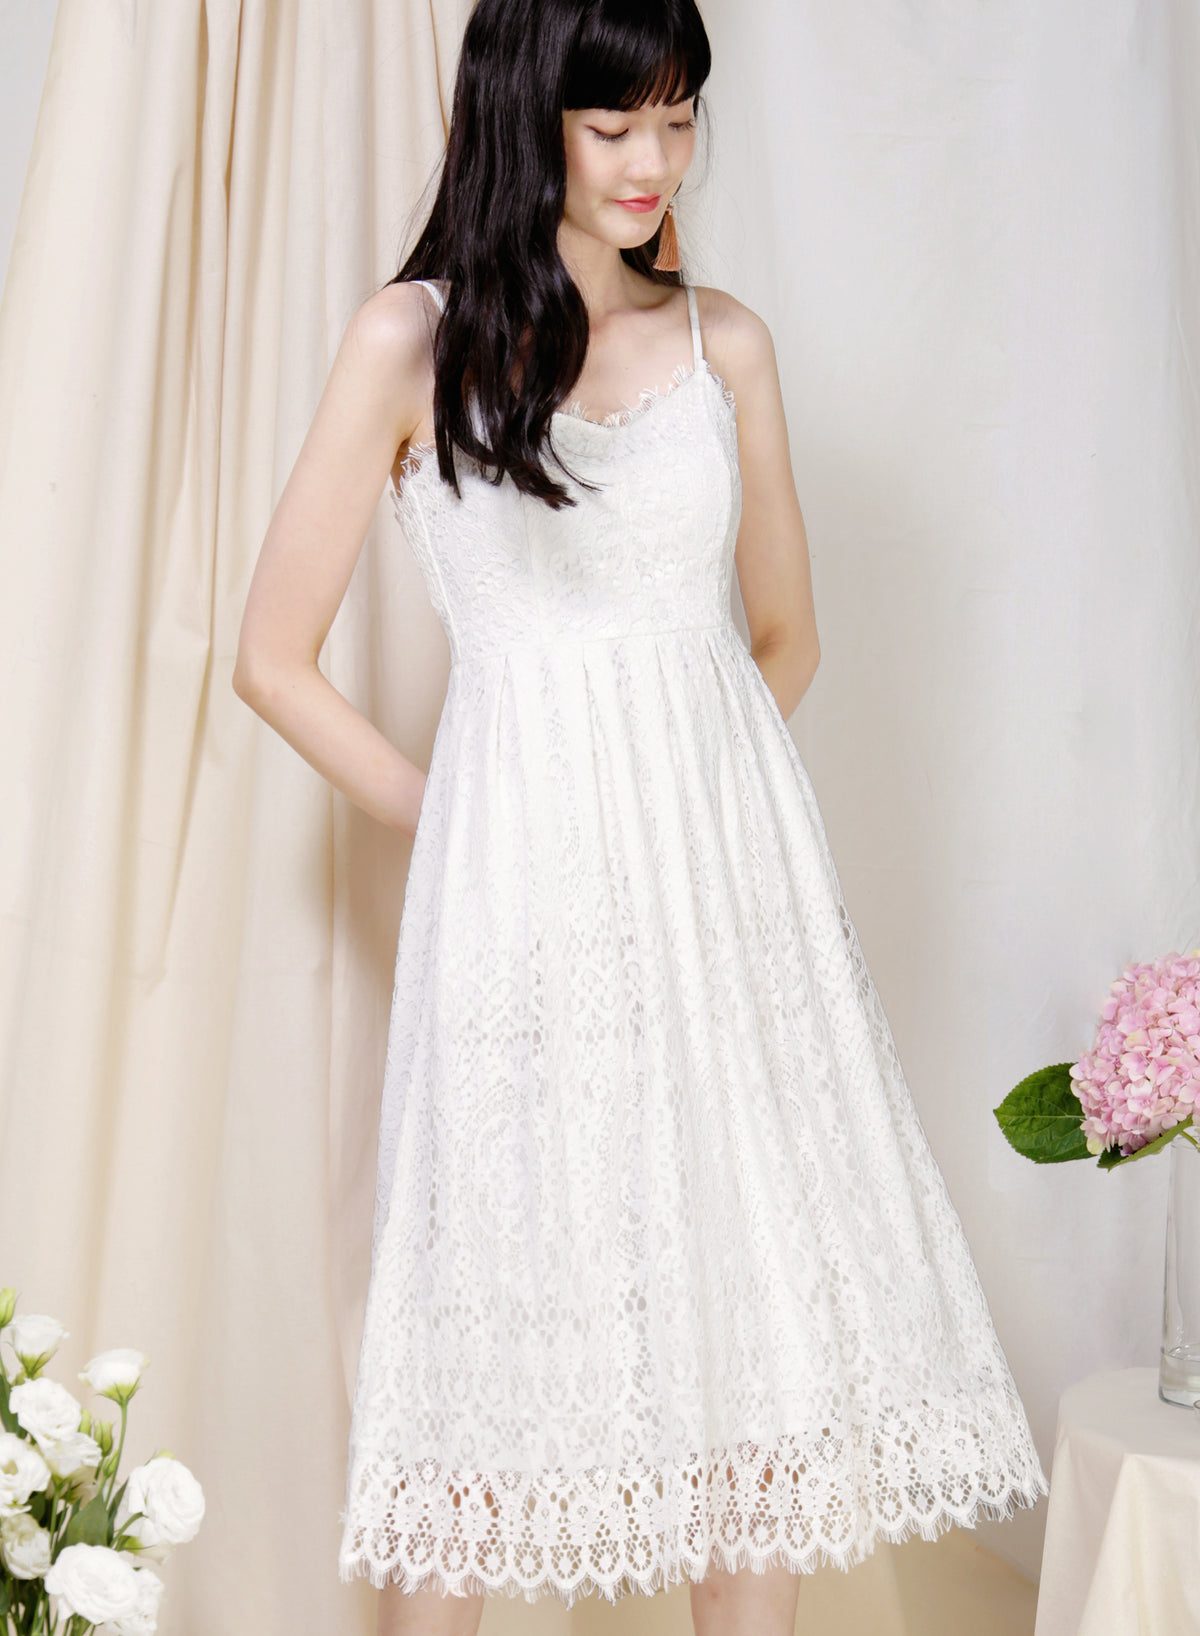 Splendour Lace Midi Dress (White) at $ 48.00 only sold at And Well Dressed Online Fashion Store Singapore